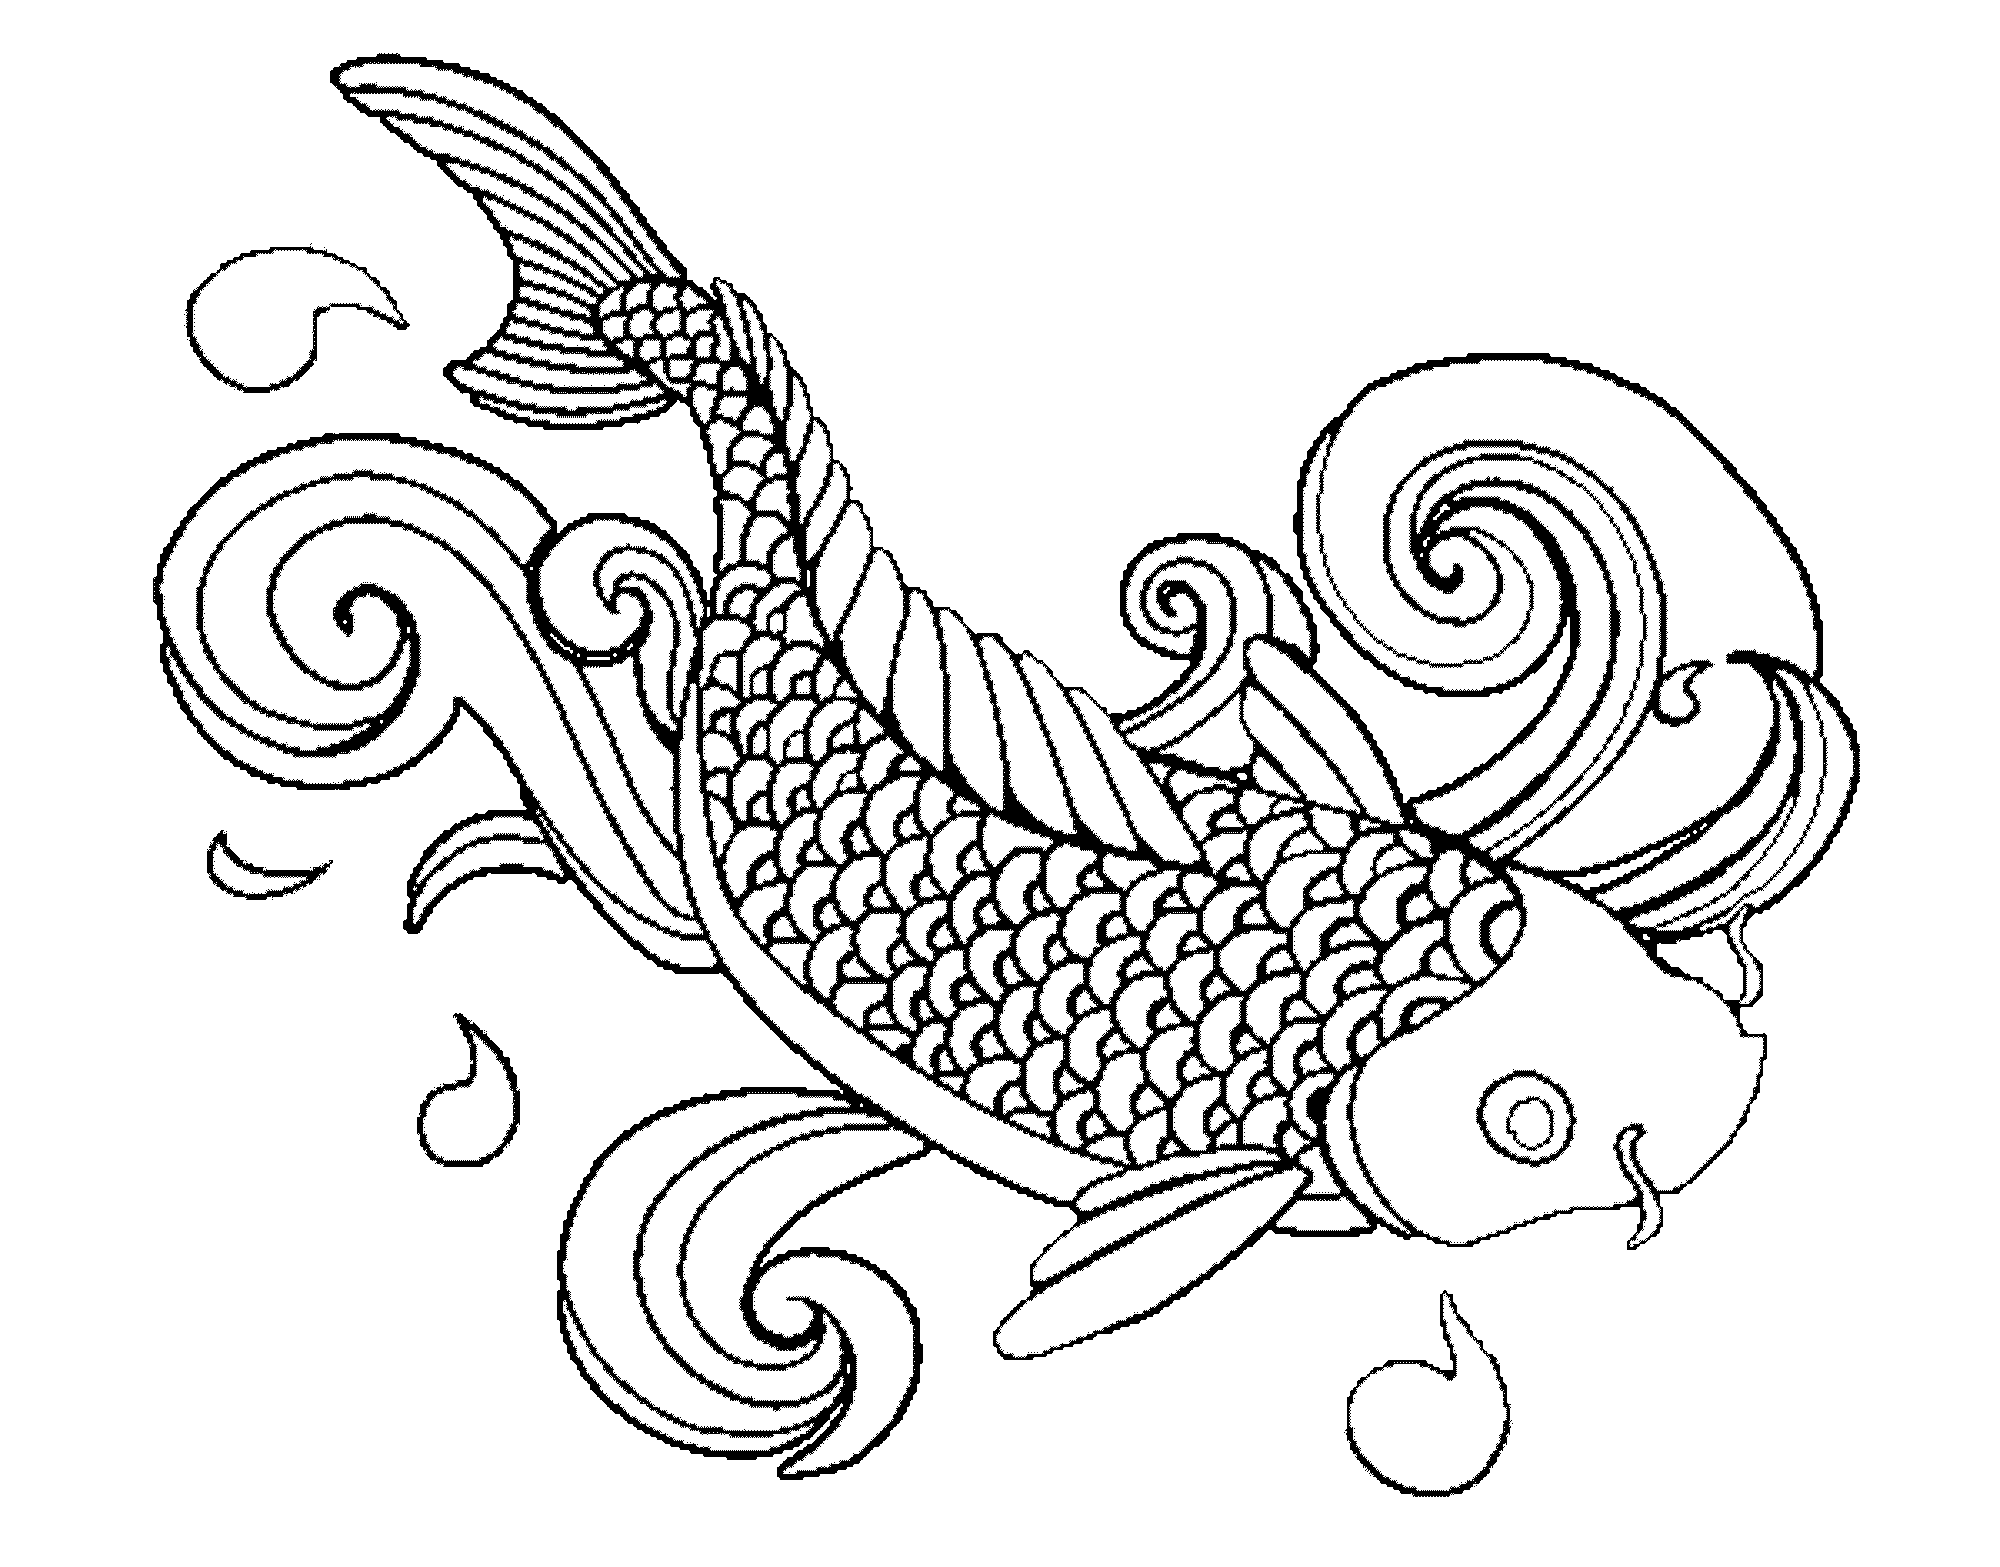 Coloring Page Free Download Printable Pencil And 2000x1567 Great Fish Pictures To Print Cool Gallery Ideas